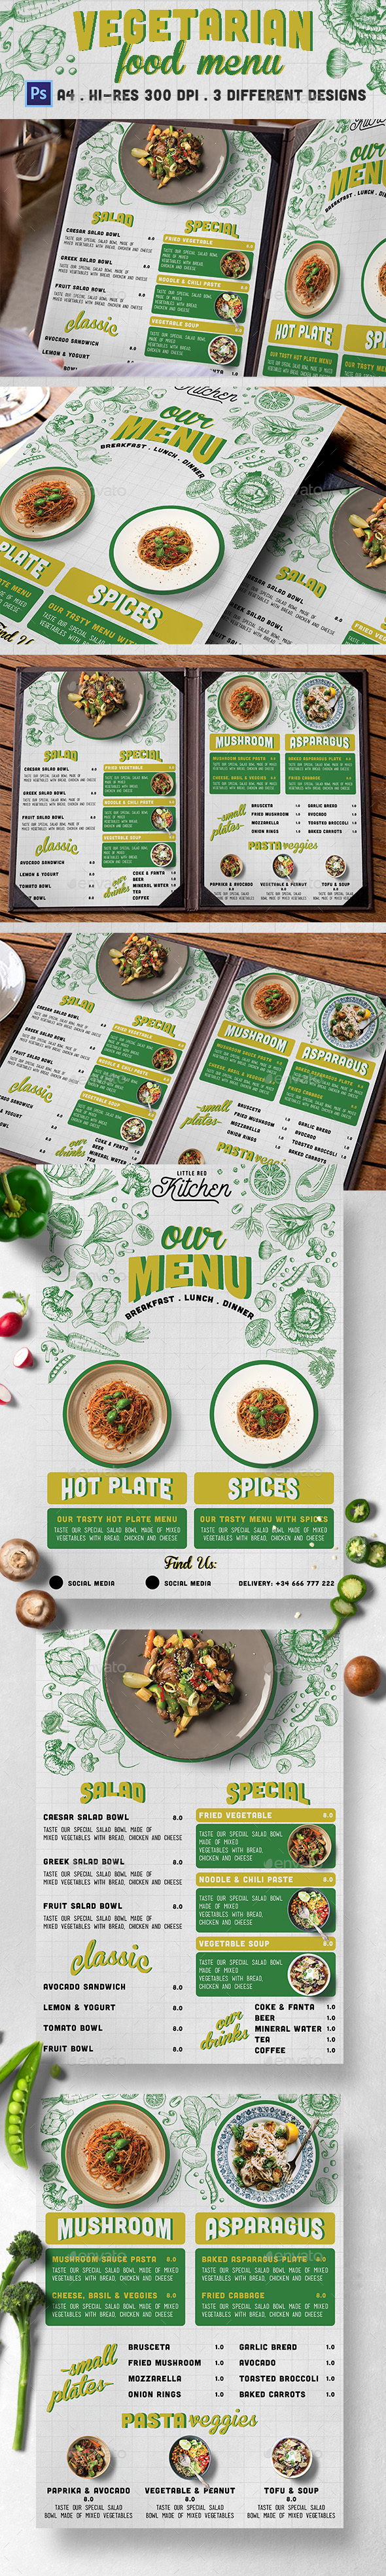 Vegetarian Restaurant Menu - Food Menus Print Templates